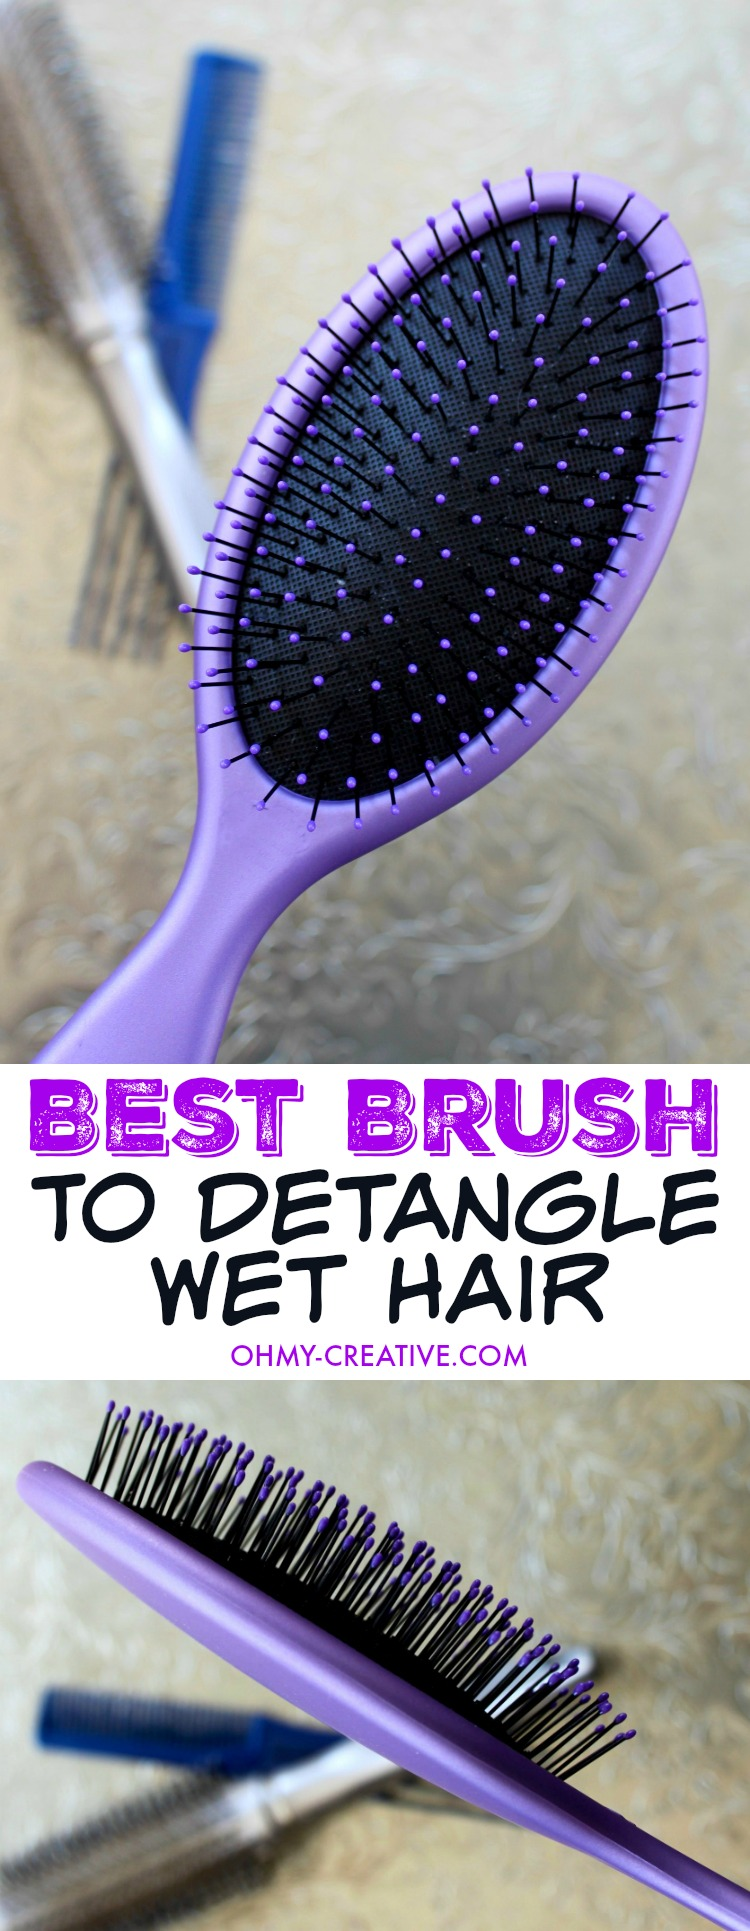 The Best Brush to Detangle Wet Hair - a hairbrush that doesn't hurt